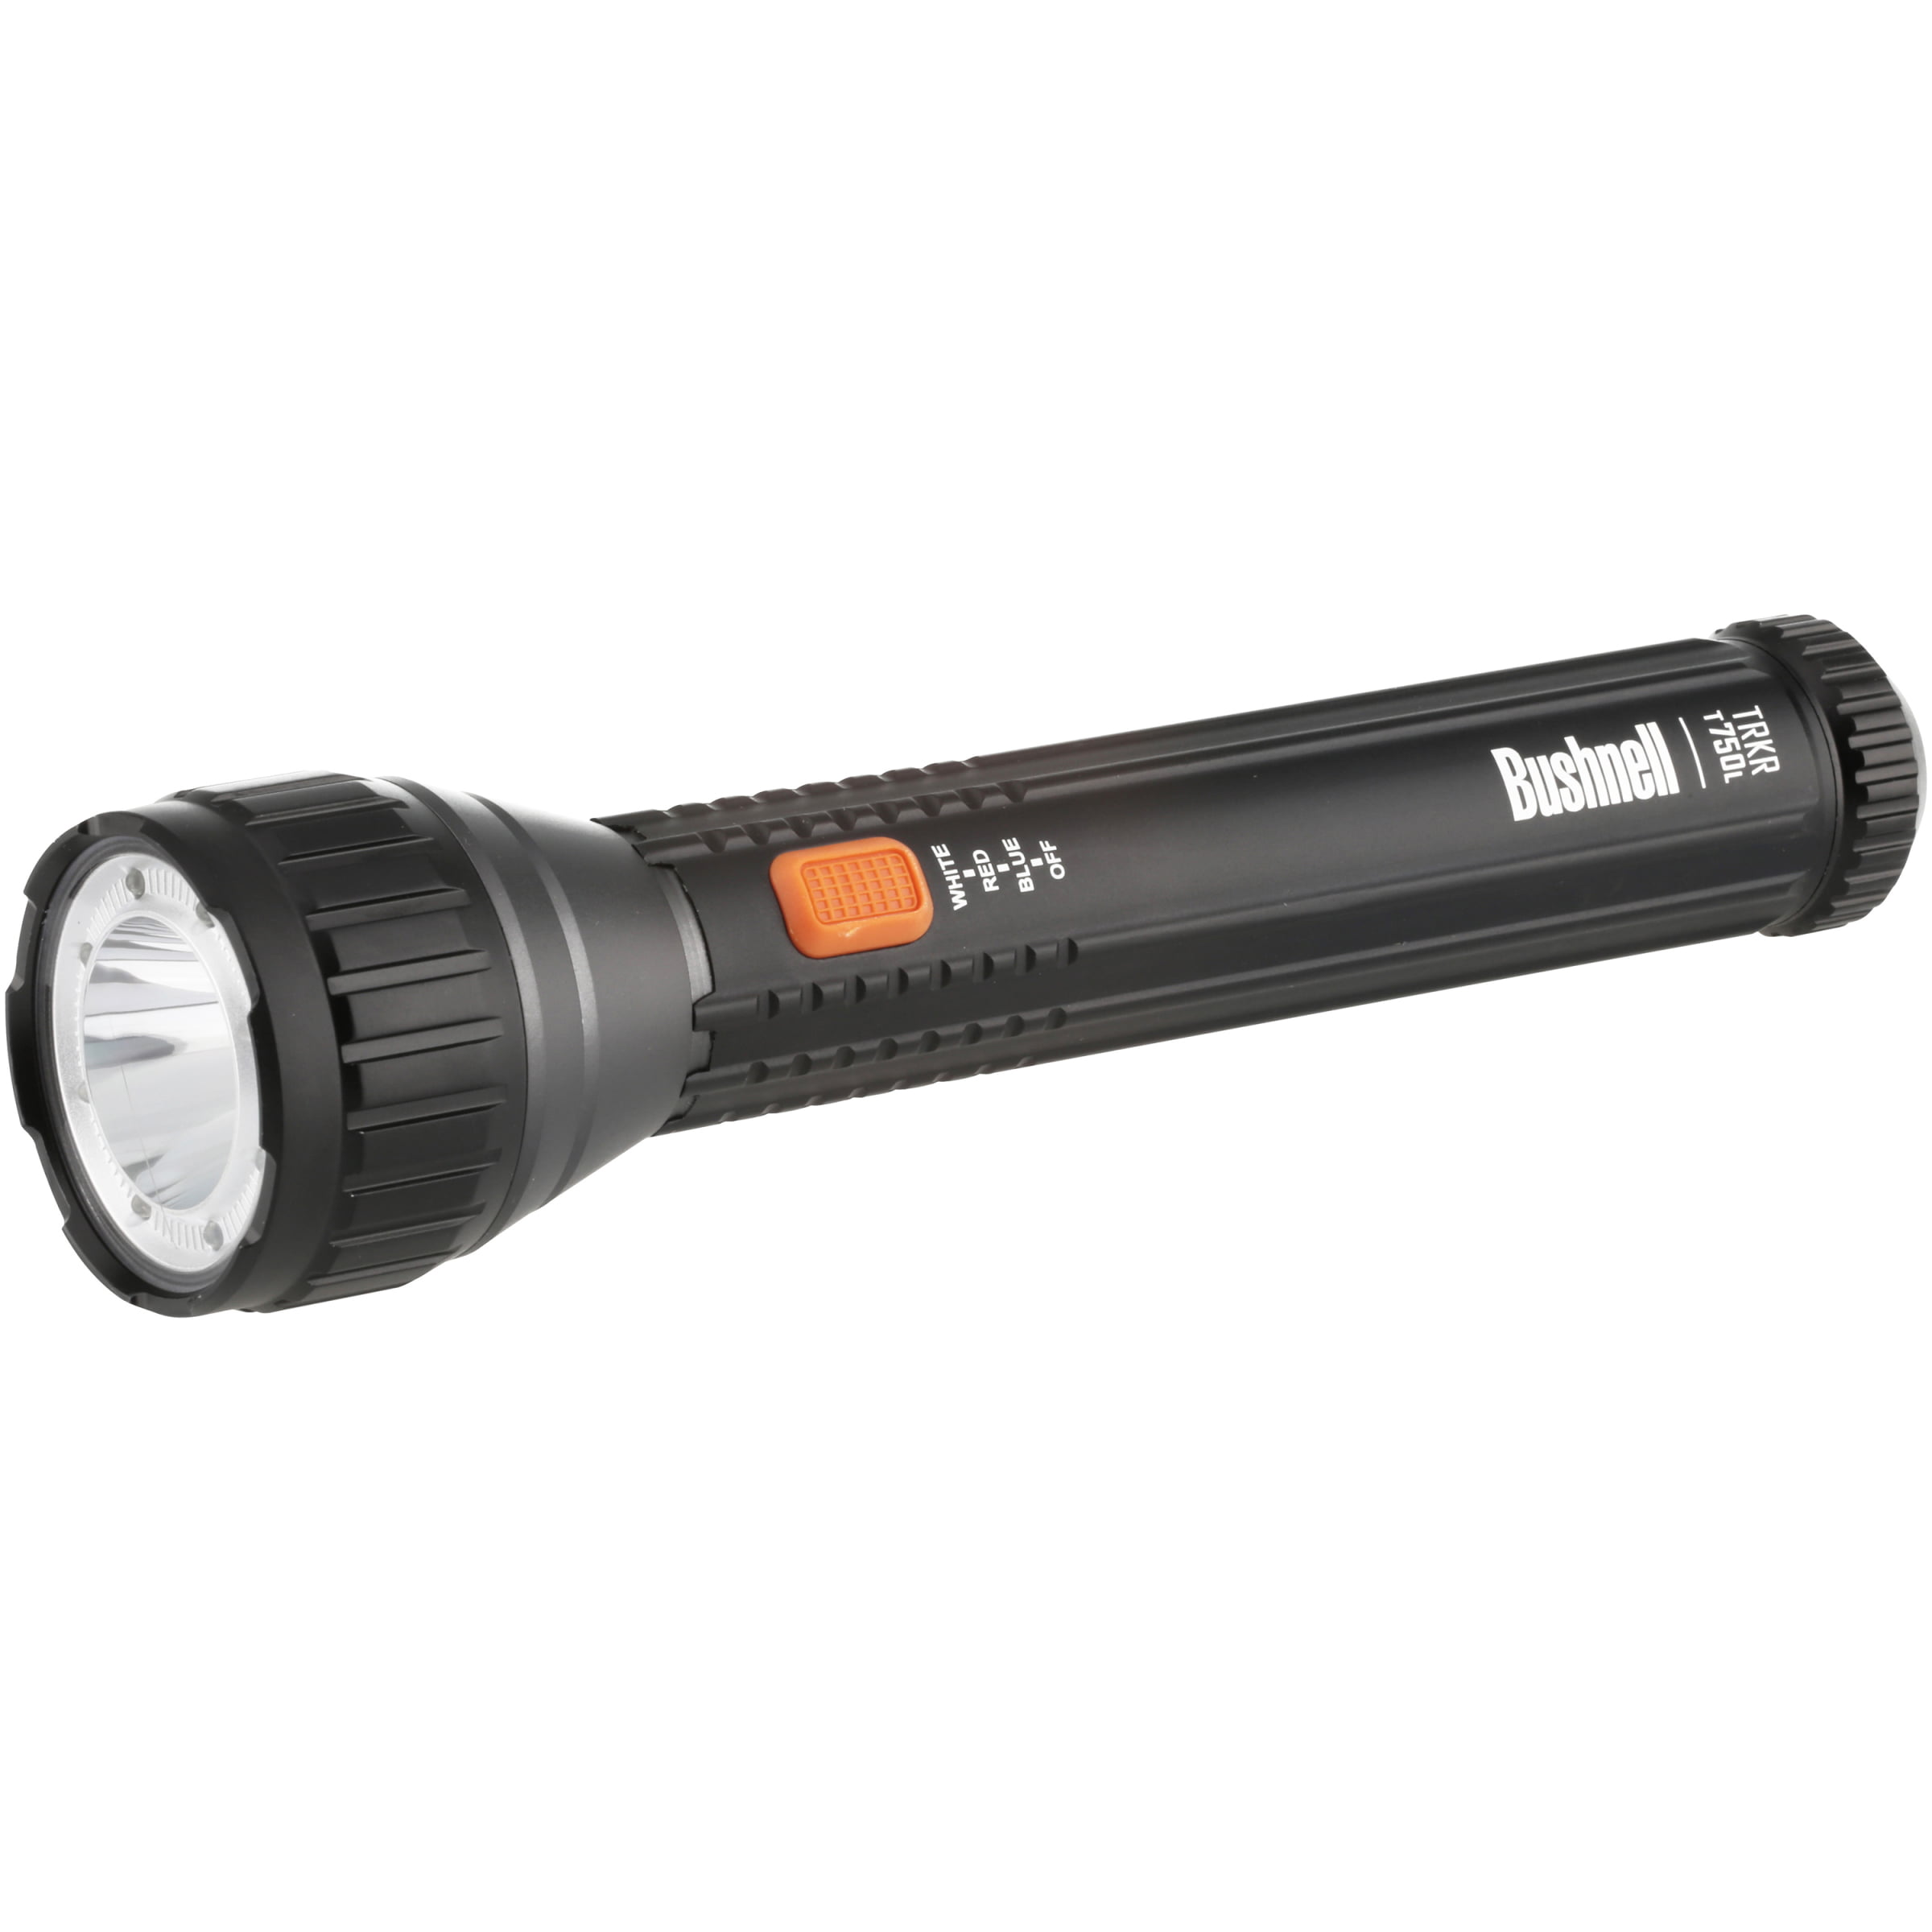 Bushnell Multi�Color 750 Lumens Flashlight Carded Pack by Bushnell Outdoor Products